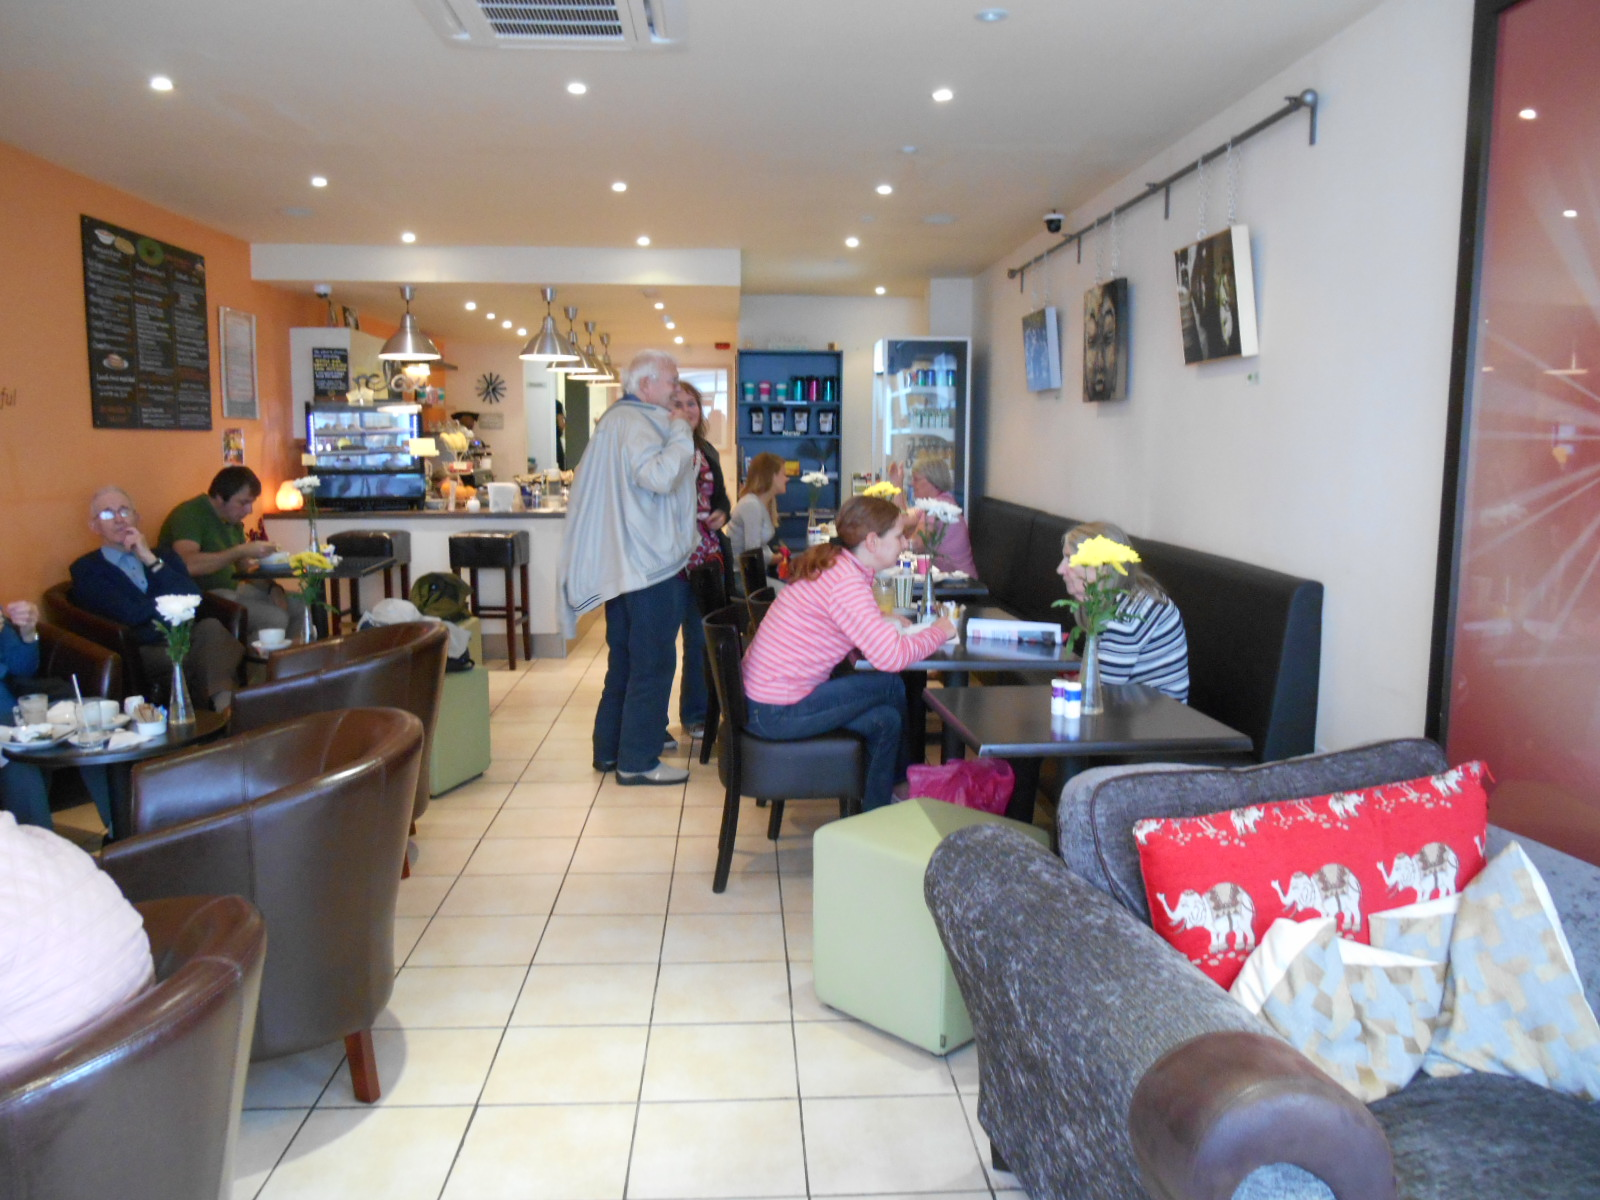 Gorgeous veg*n cafe - clean, bright, comfortable, friendly ...